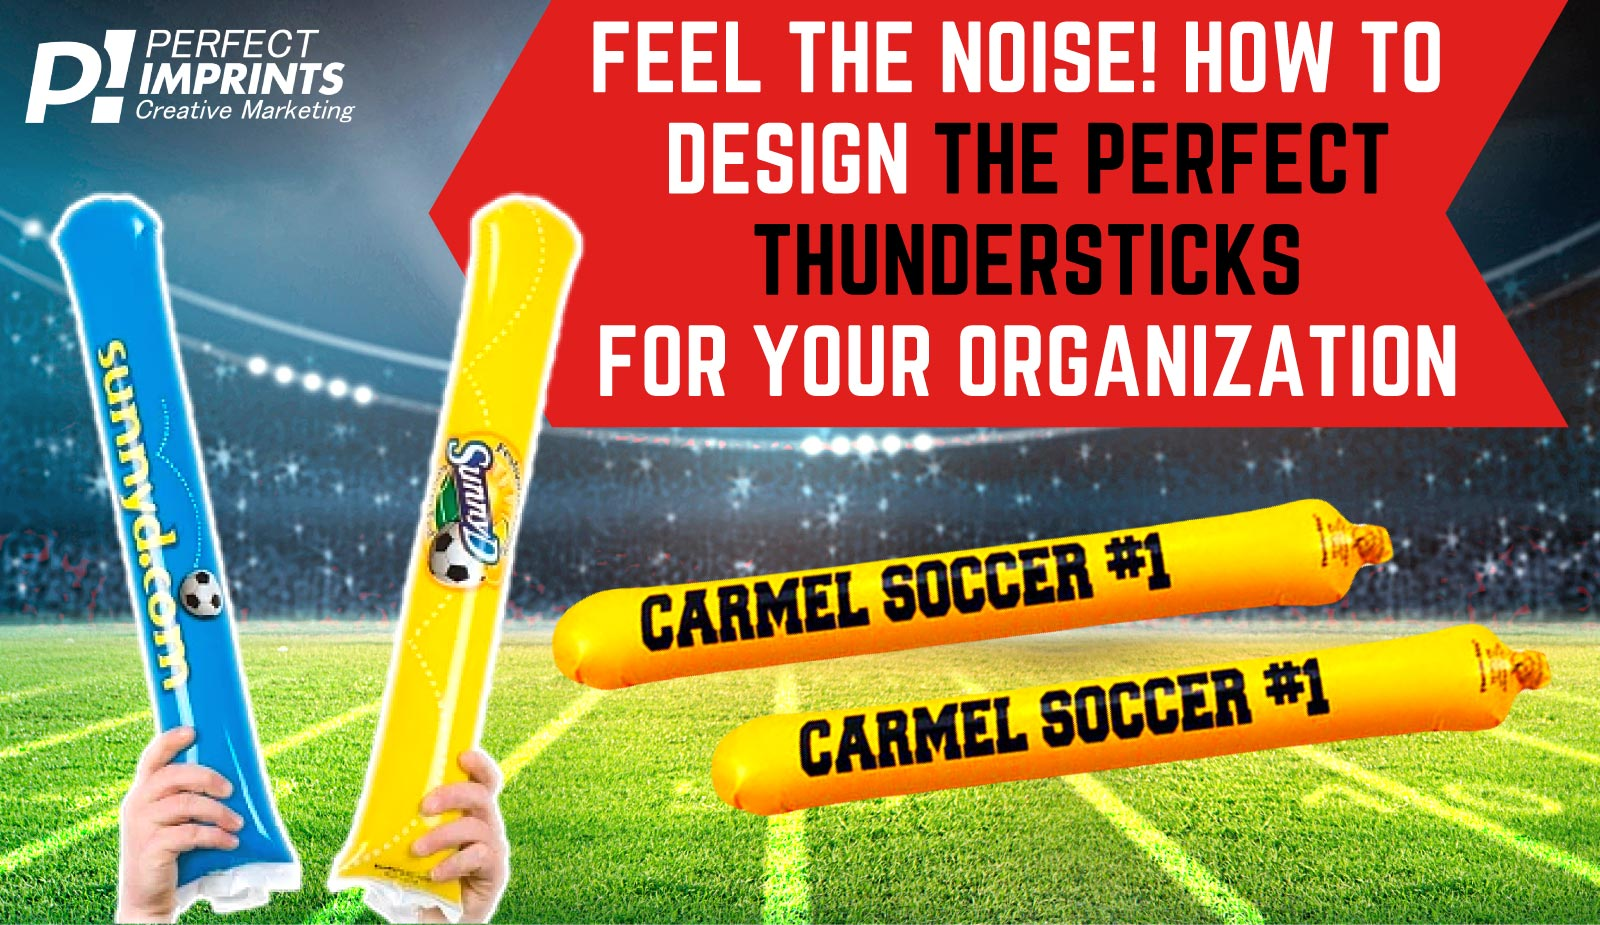 Design Custom Thundersticks for your Organization